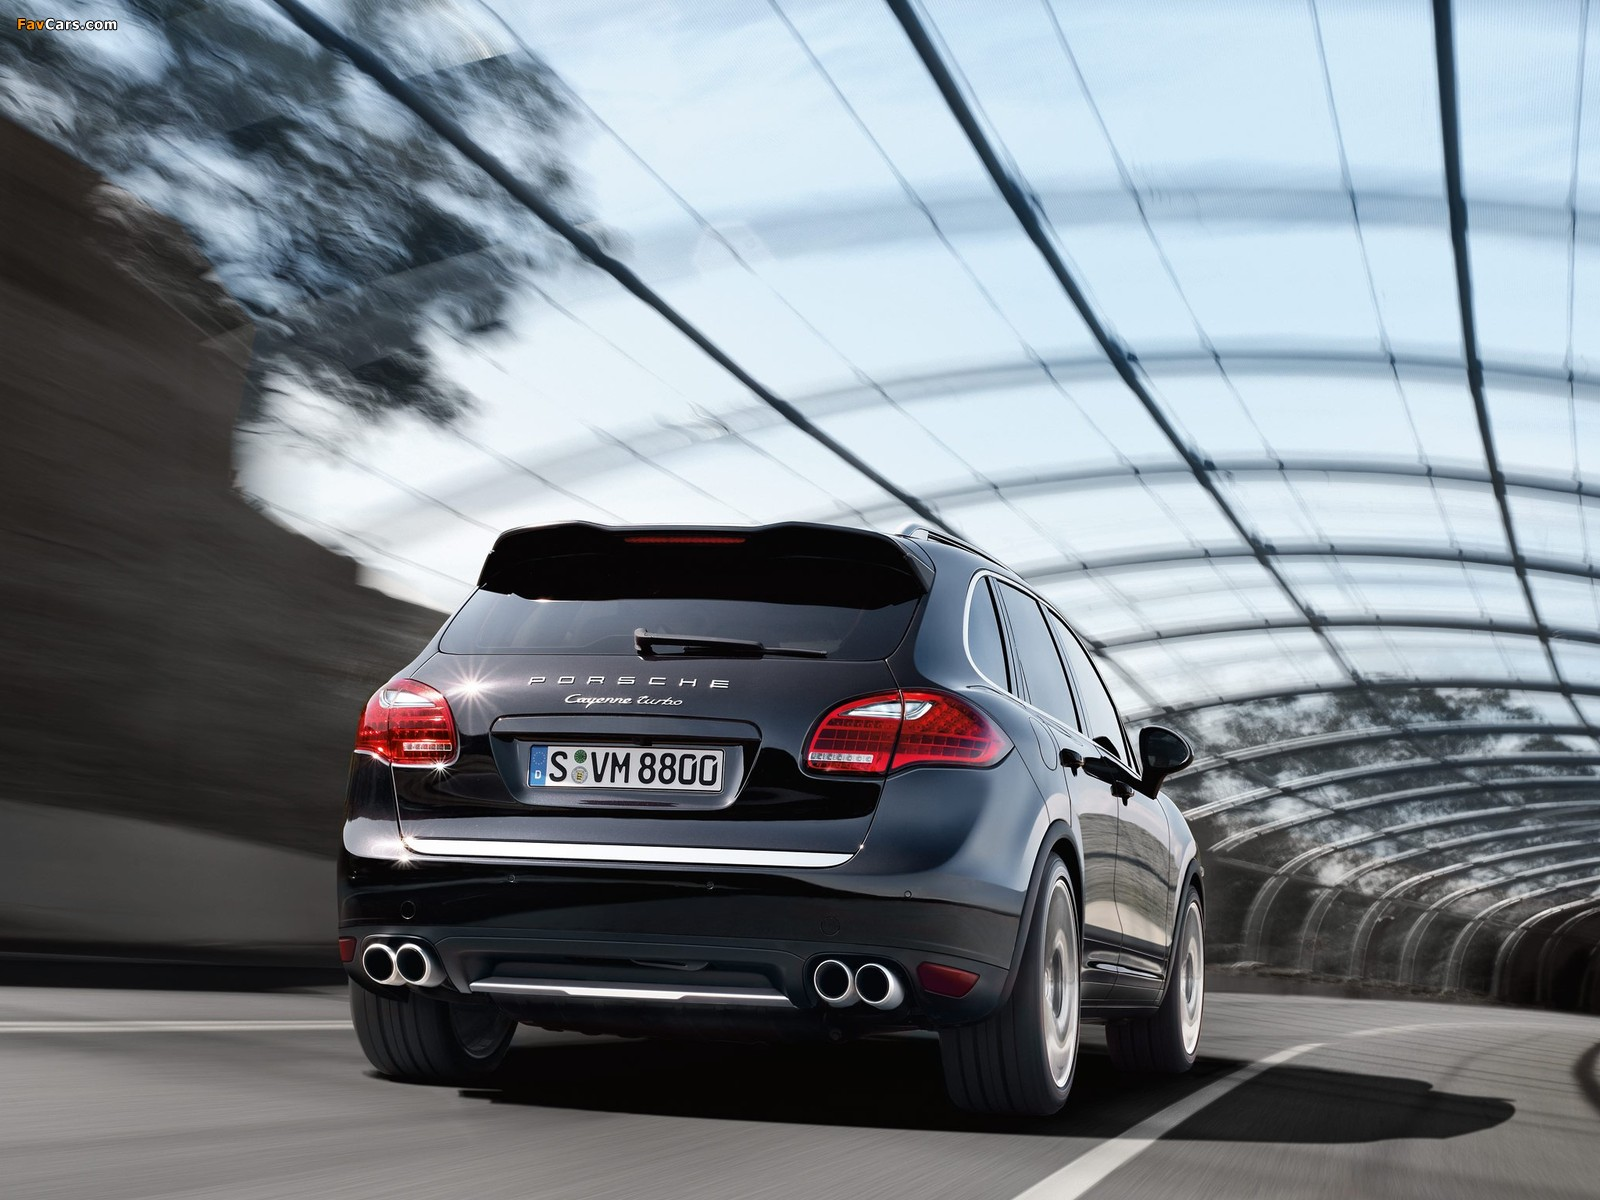 Pictures Of Porsche Cayenne Turbo 958 2010 1600x1200